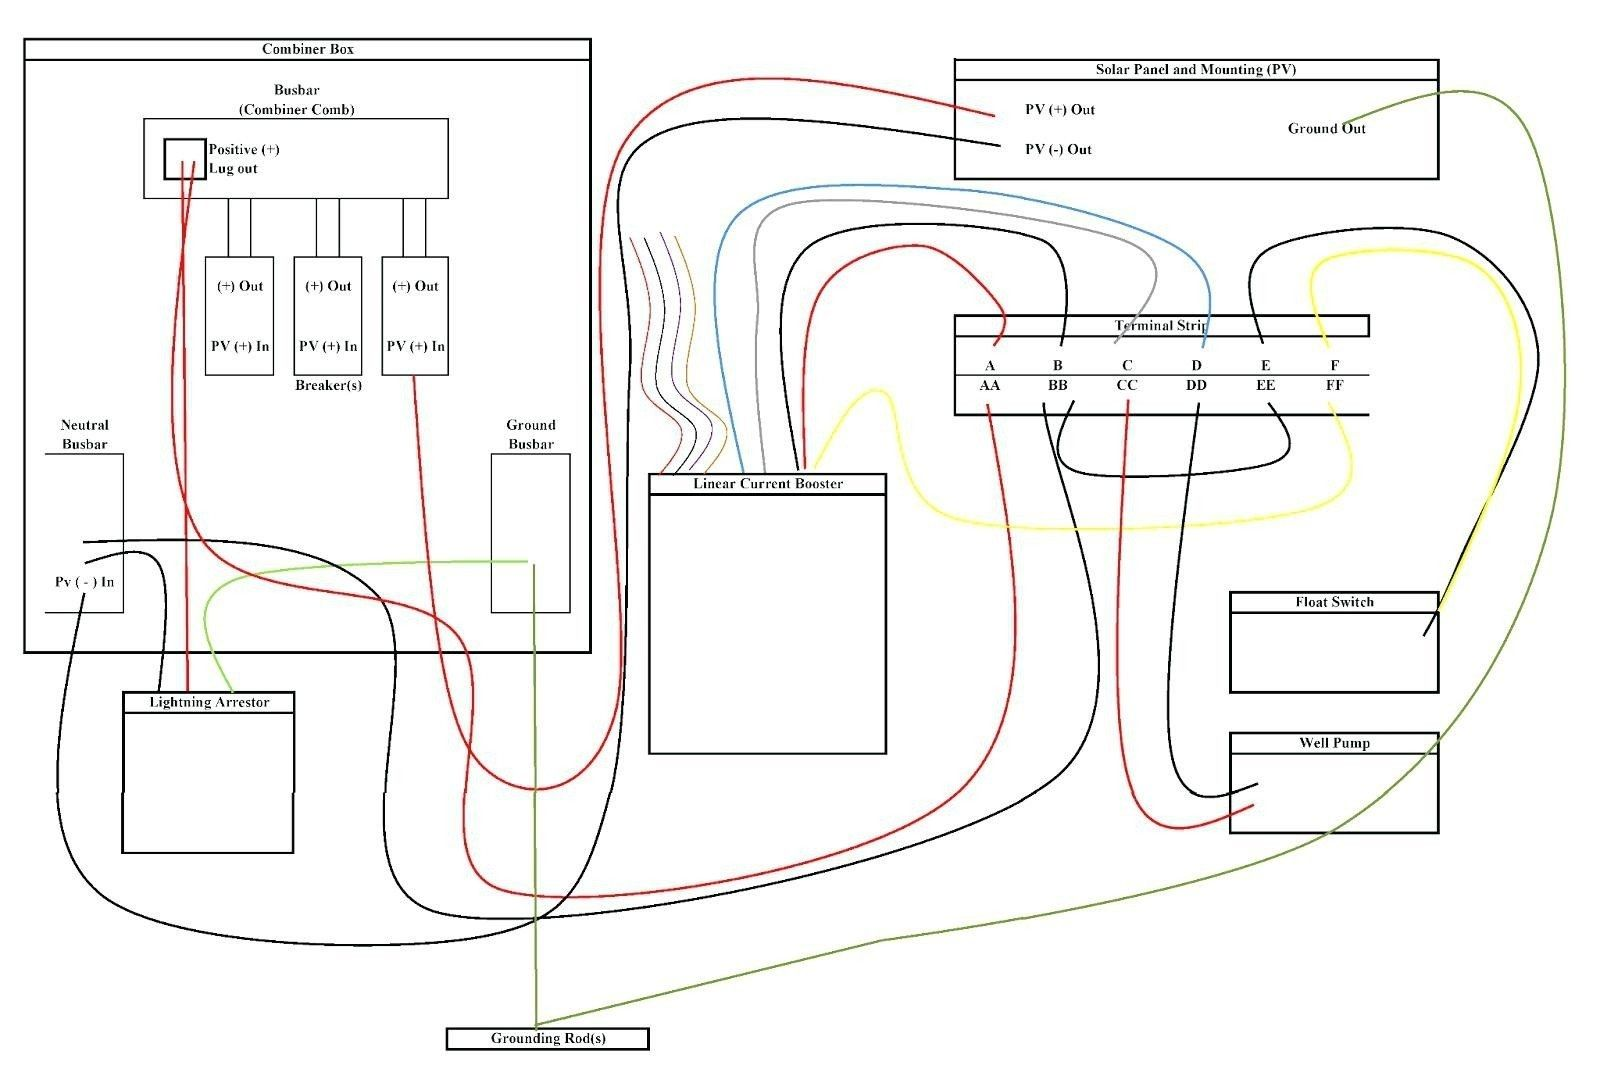 well pump pressure switch wiring diagram awesome wiring diagram for 220v switch wiring diagram [ 1600 x 1083 Pixel ]